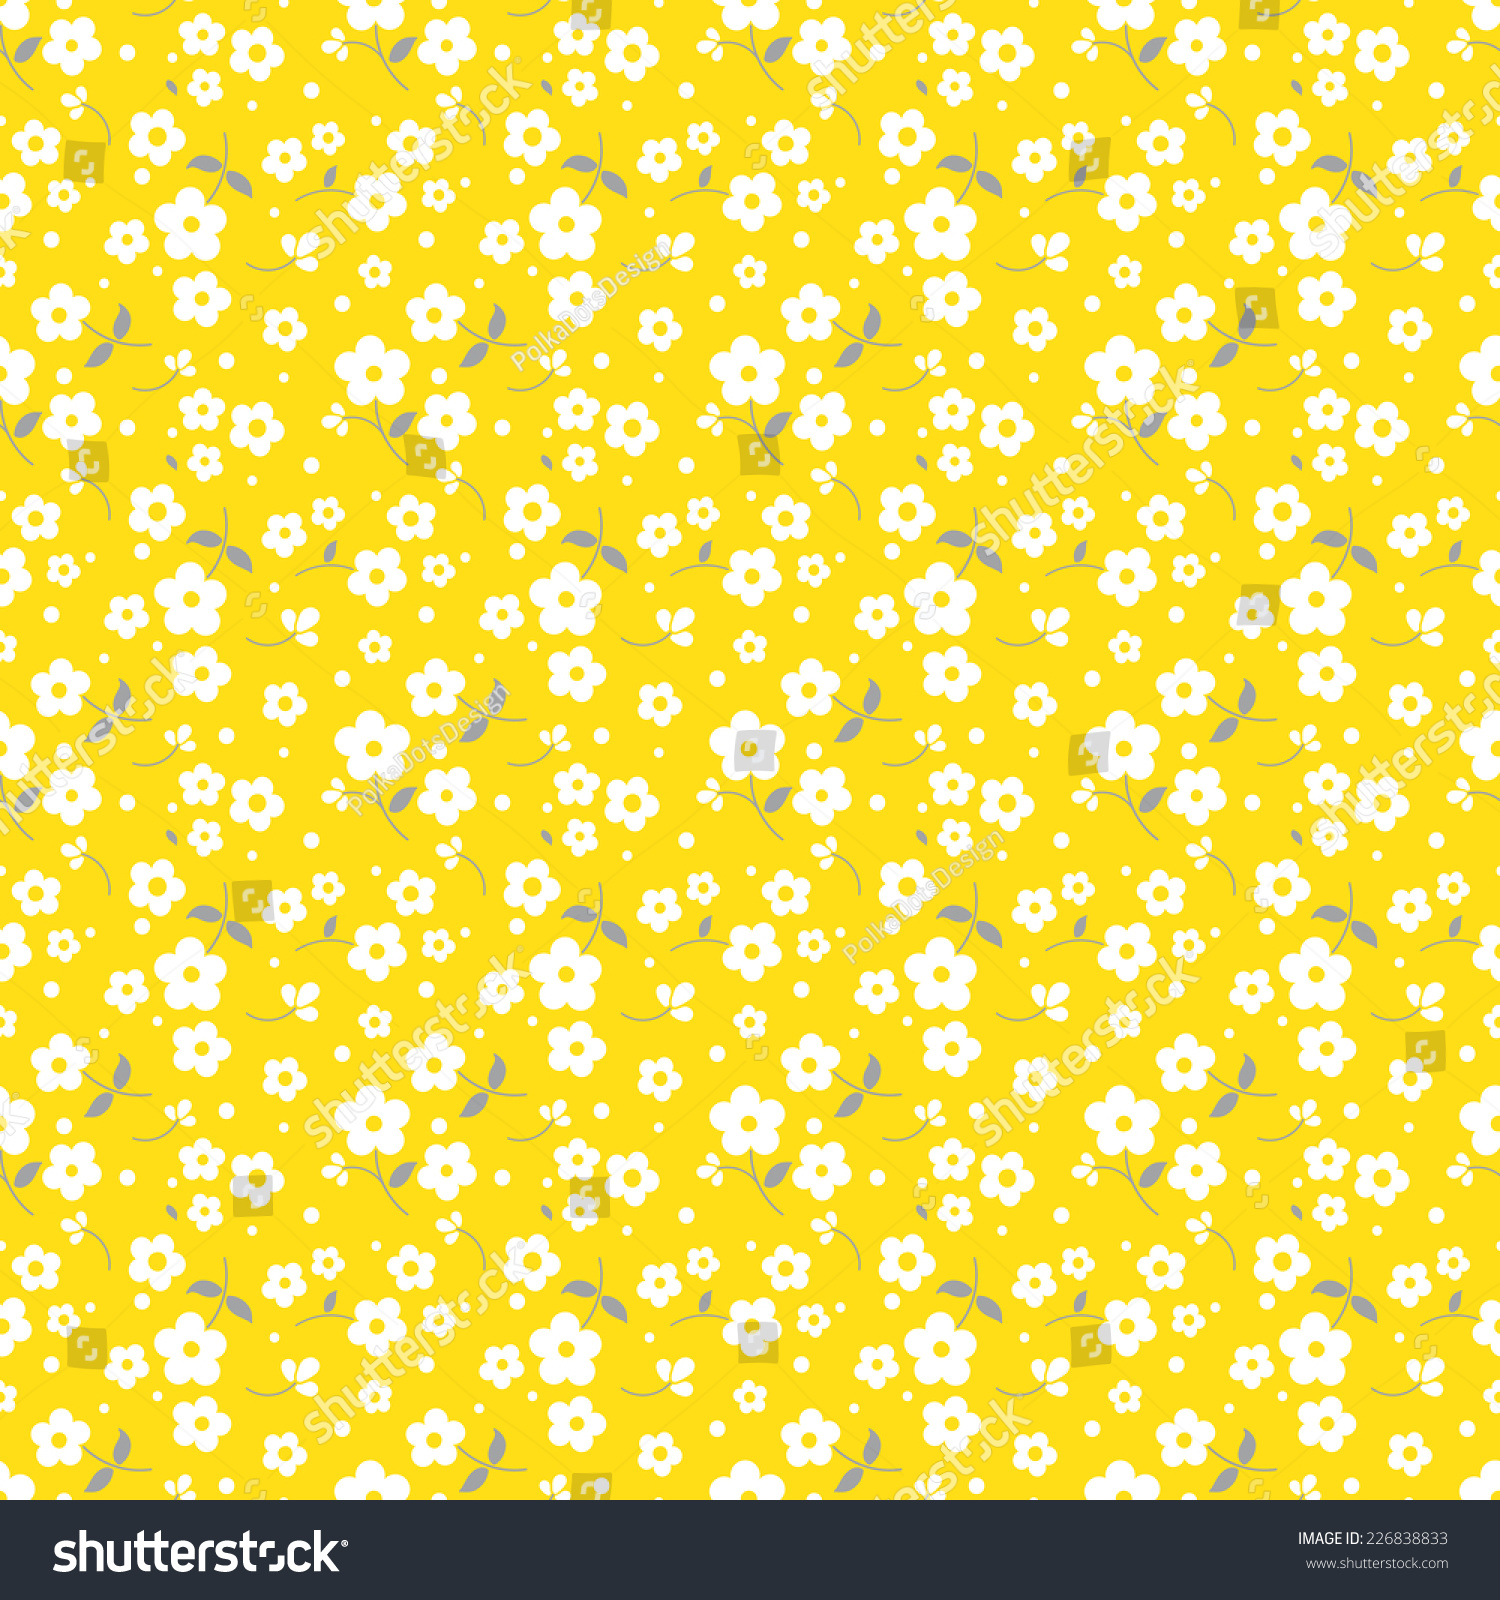 Seamless Floral Pattern White Flowers On Stock Vector Royalty